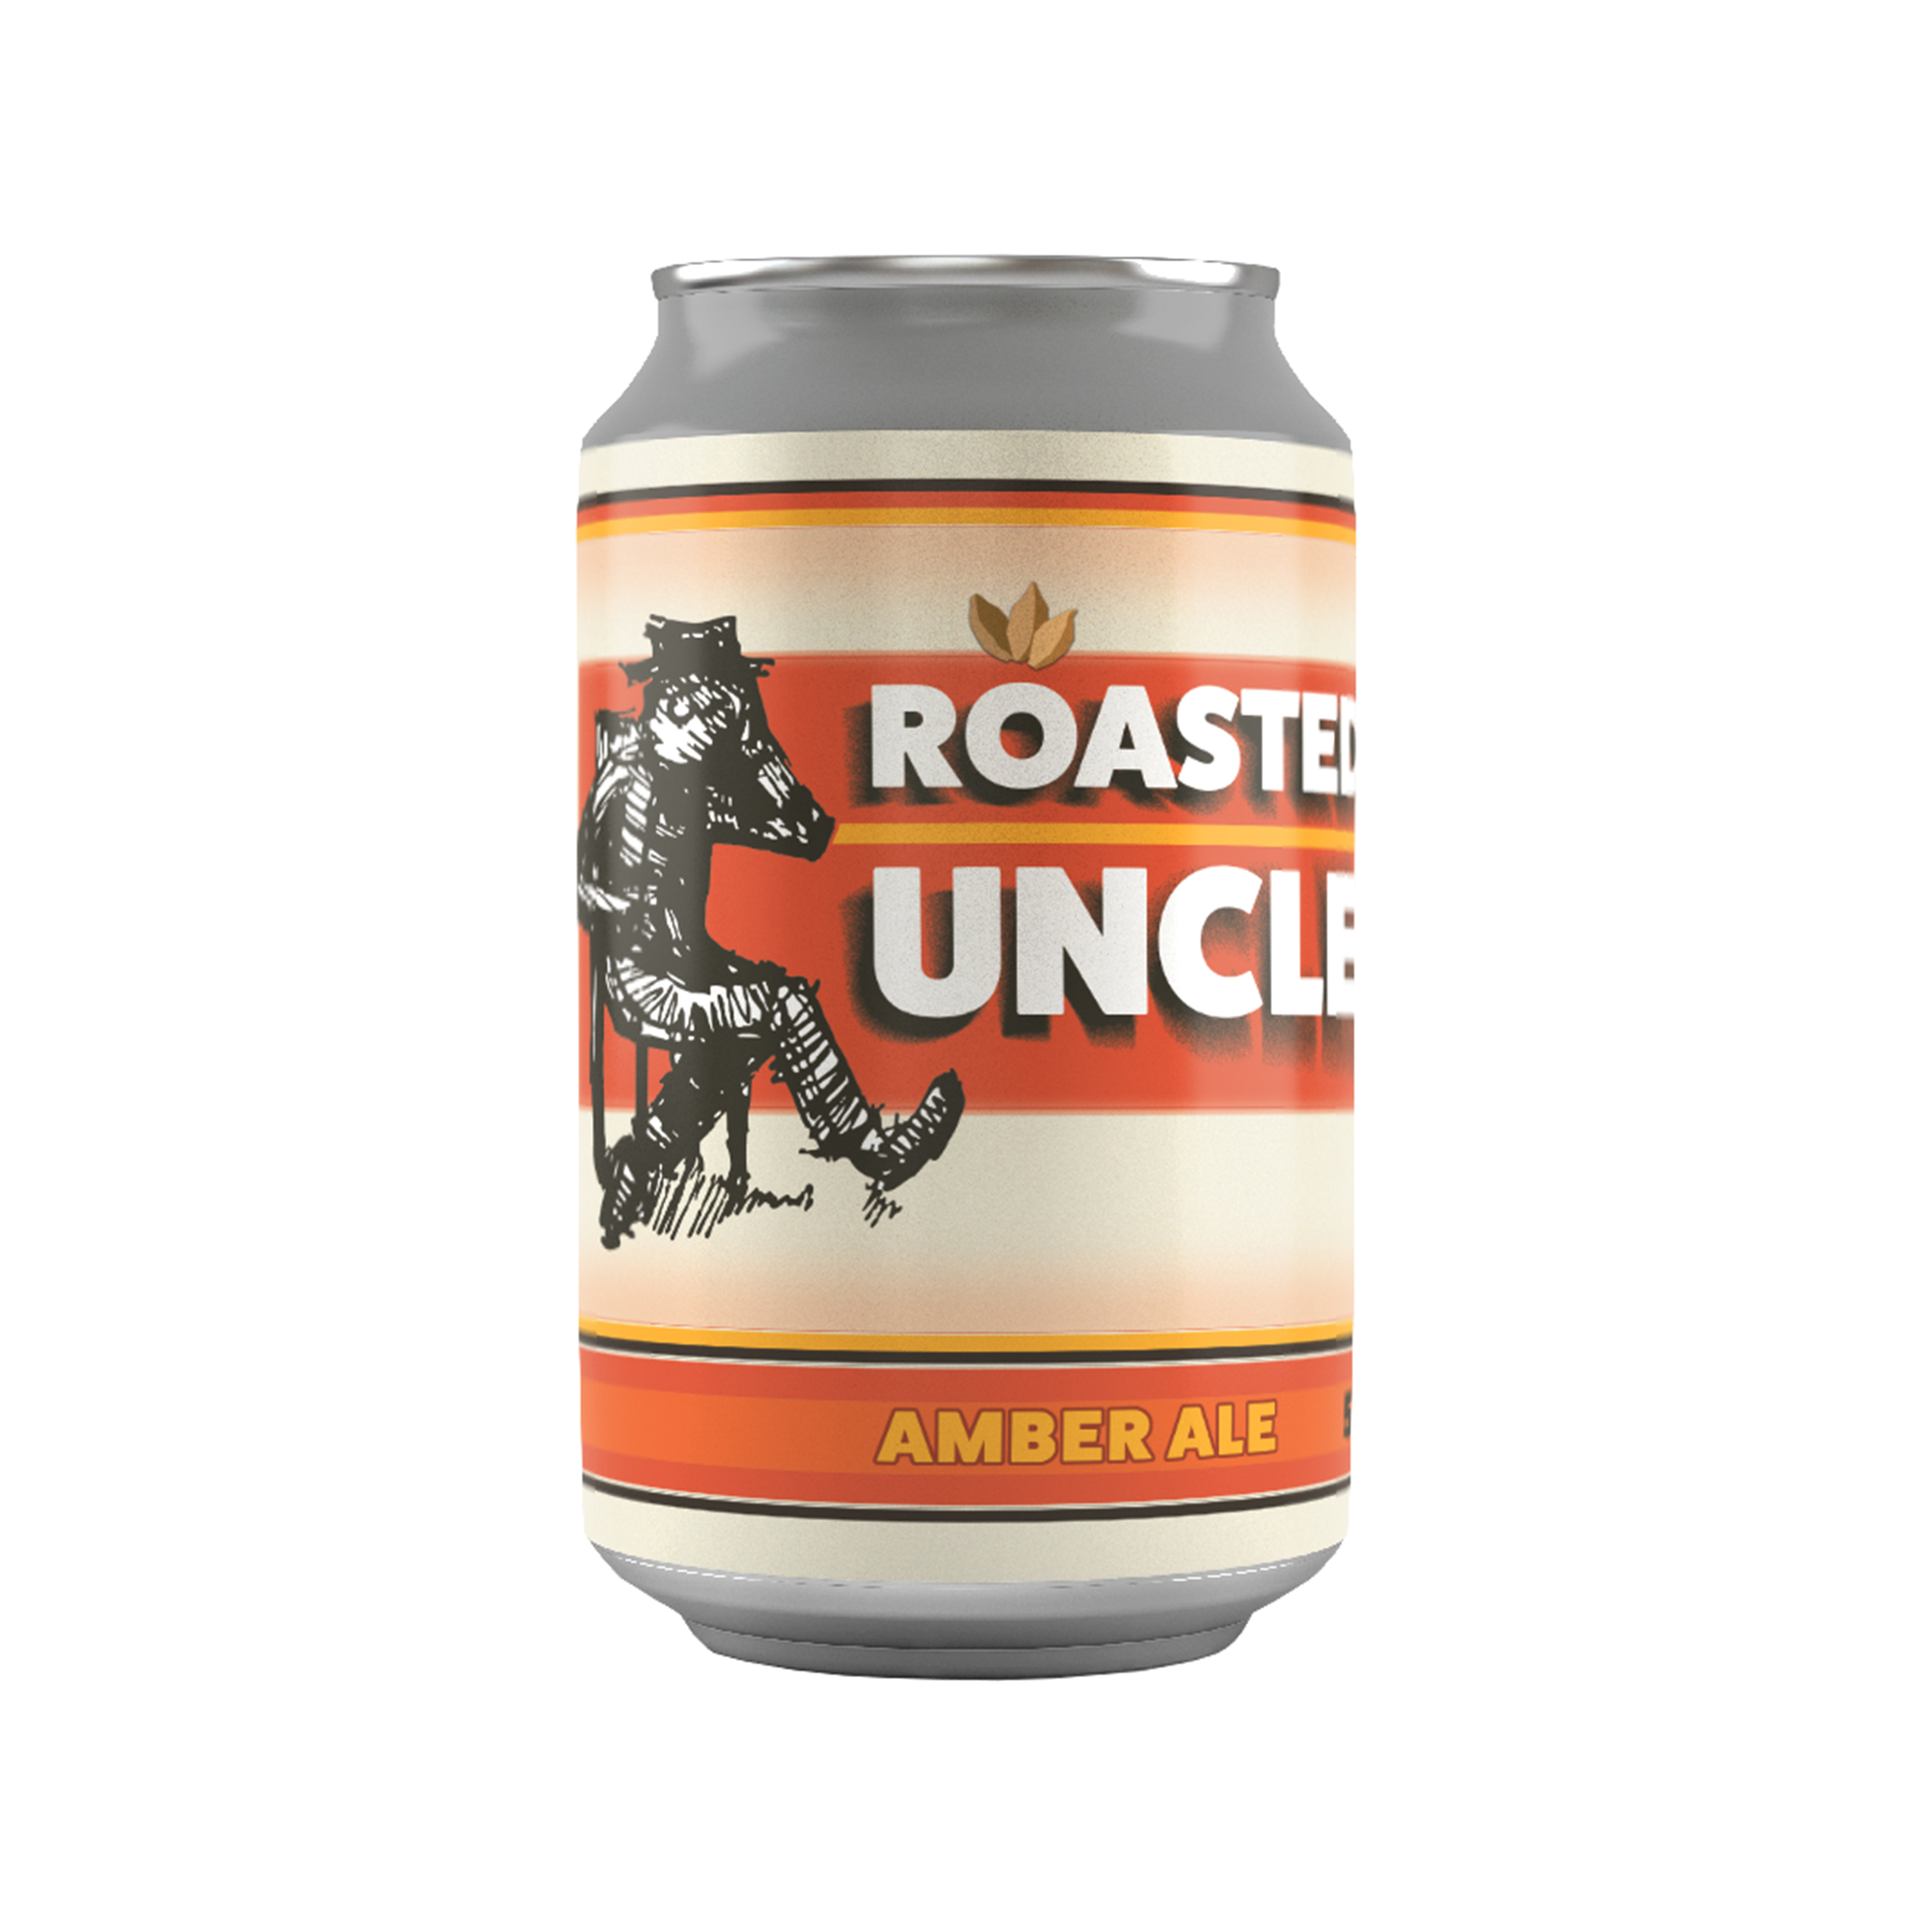 Tired Uncle Roasted Uncle Amber Ale 5.3% - 0.33l Can